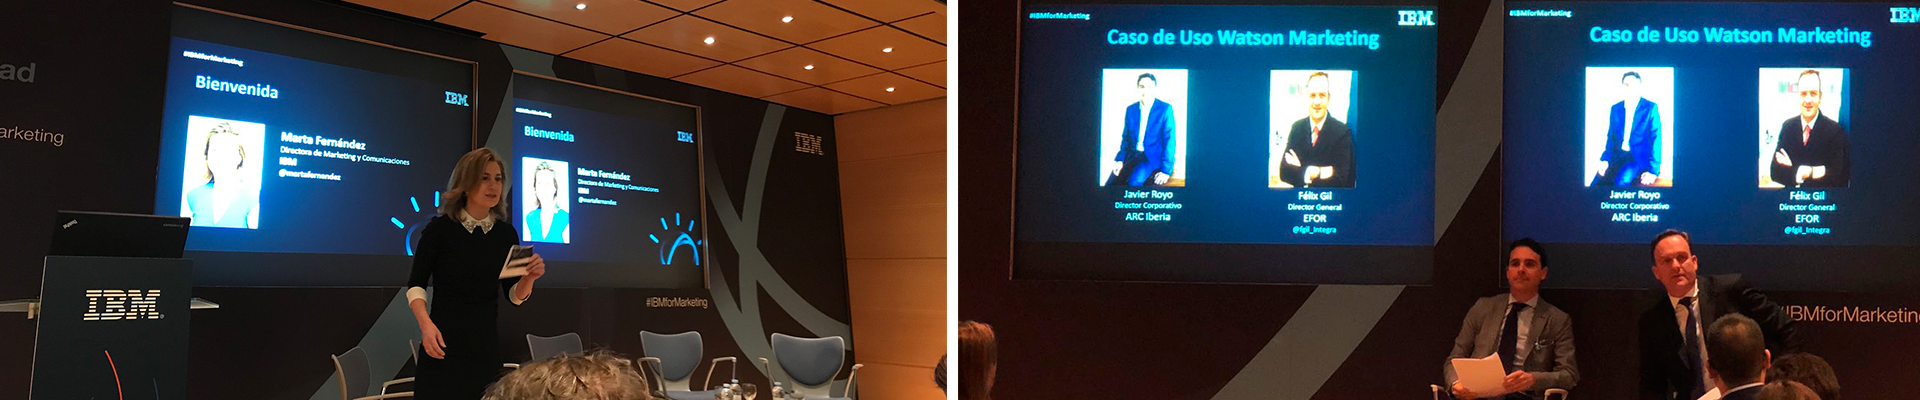 "EFOR participa en el evento ""La nueva realidad del marketing"" de IBM"